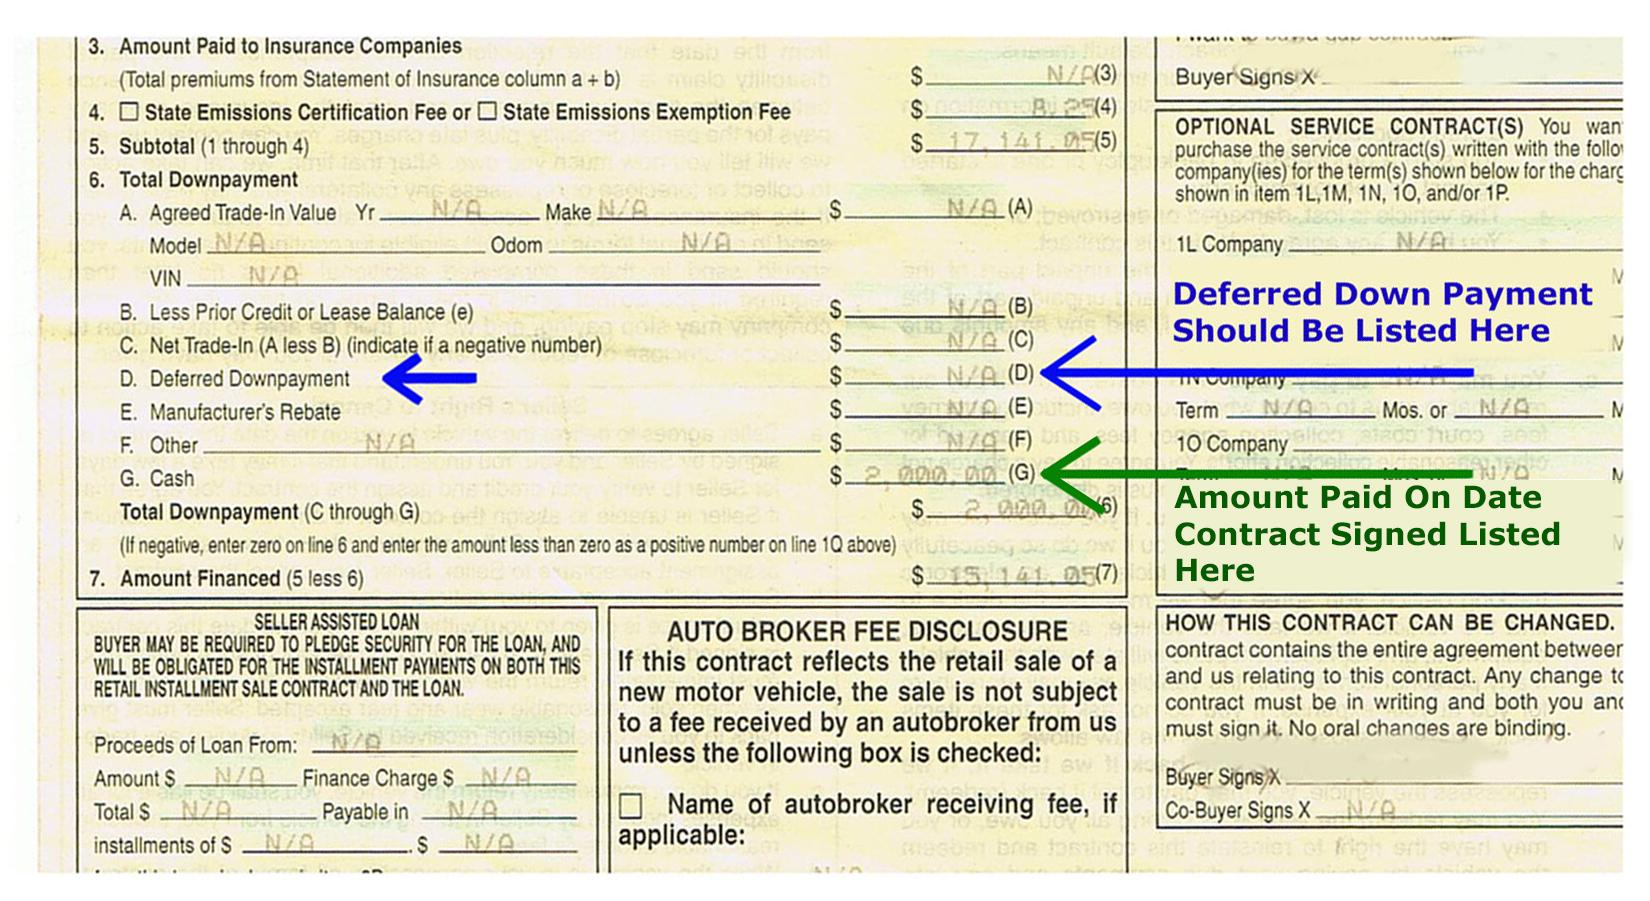 Failing To Properly Document Deferred Down Payments